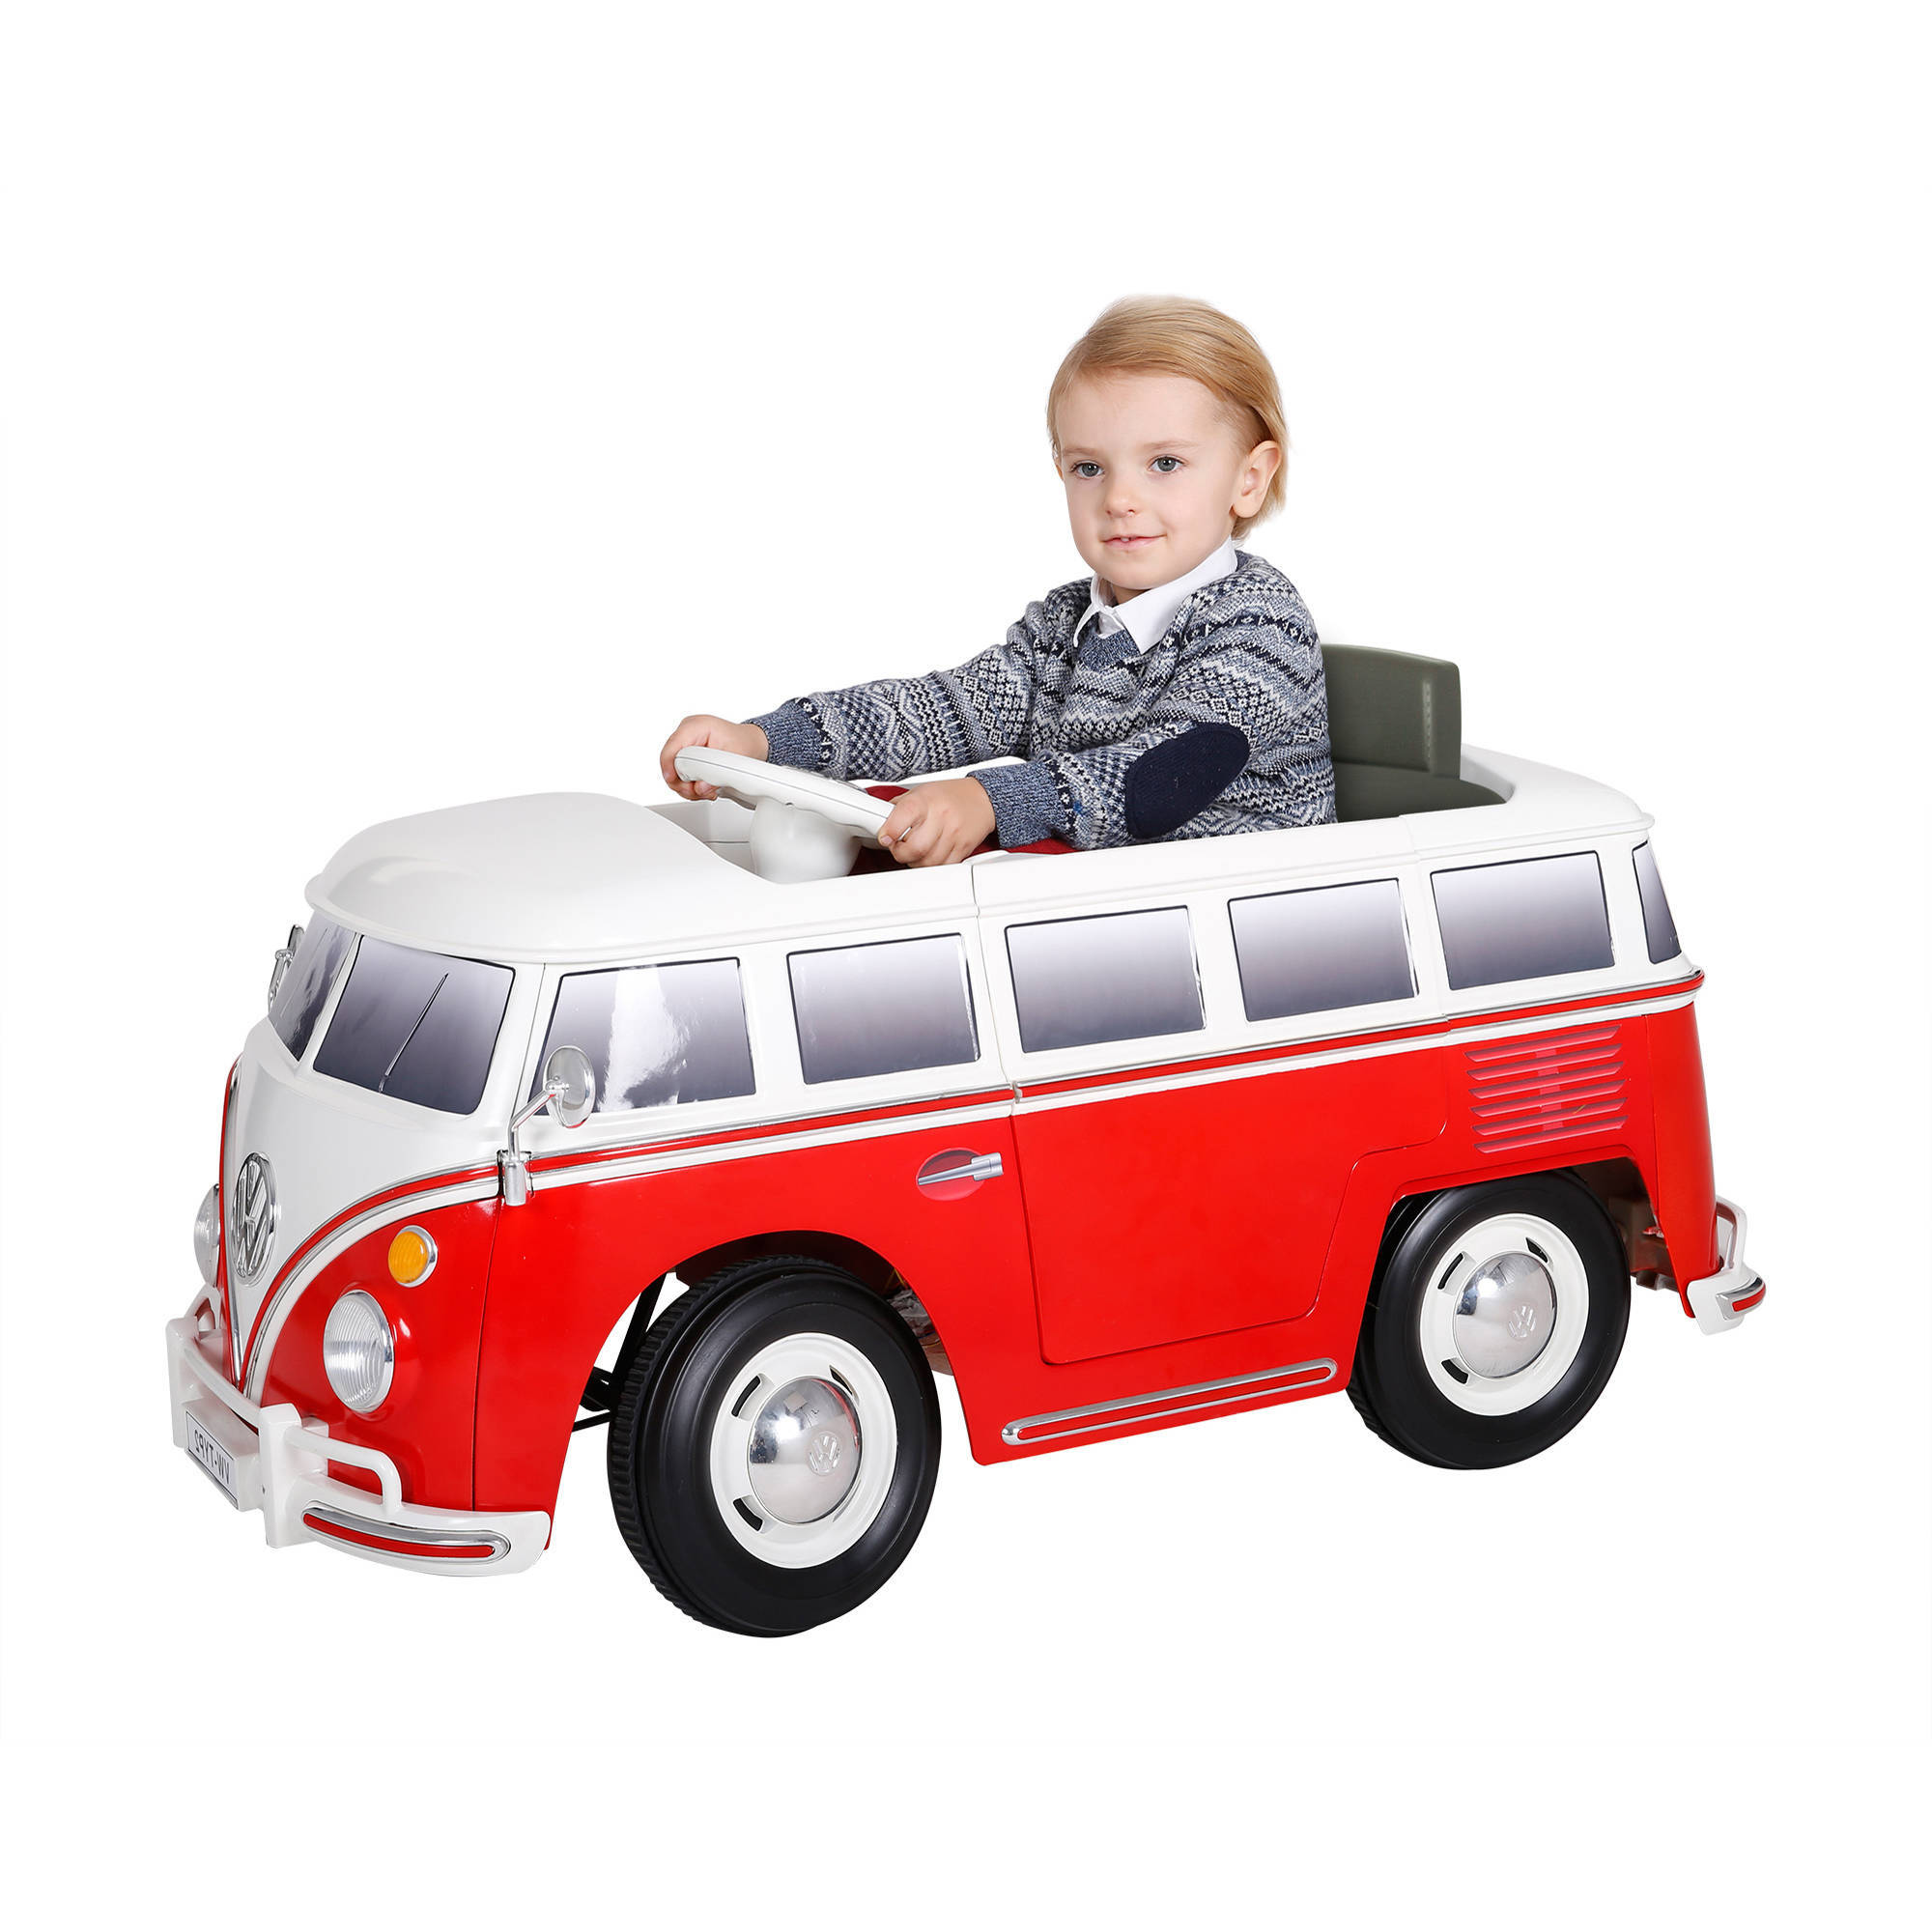 RollPlay 6V VW Bus Battery Powered Ride-On